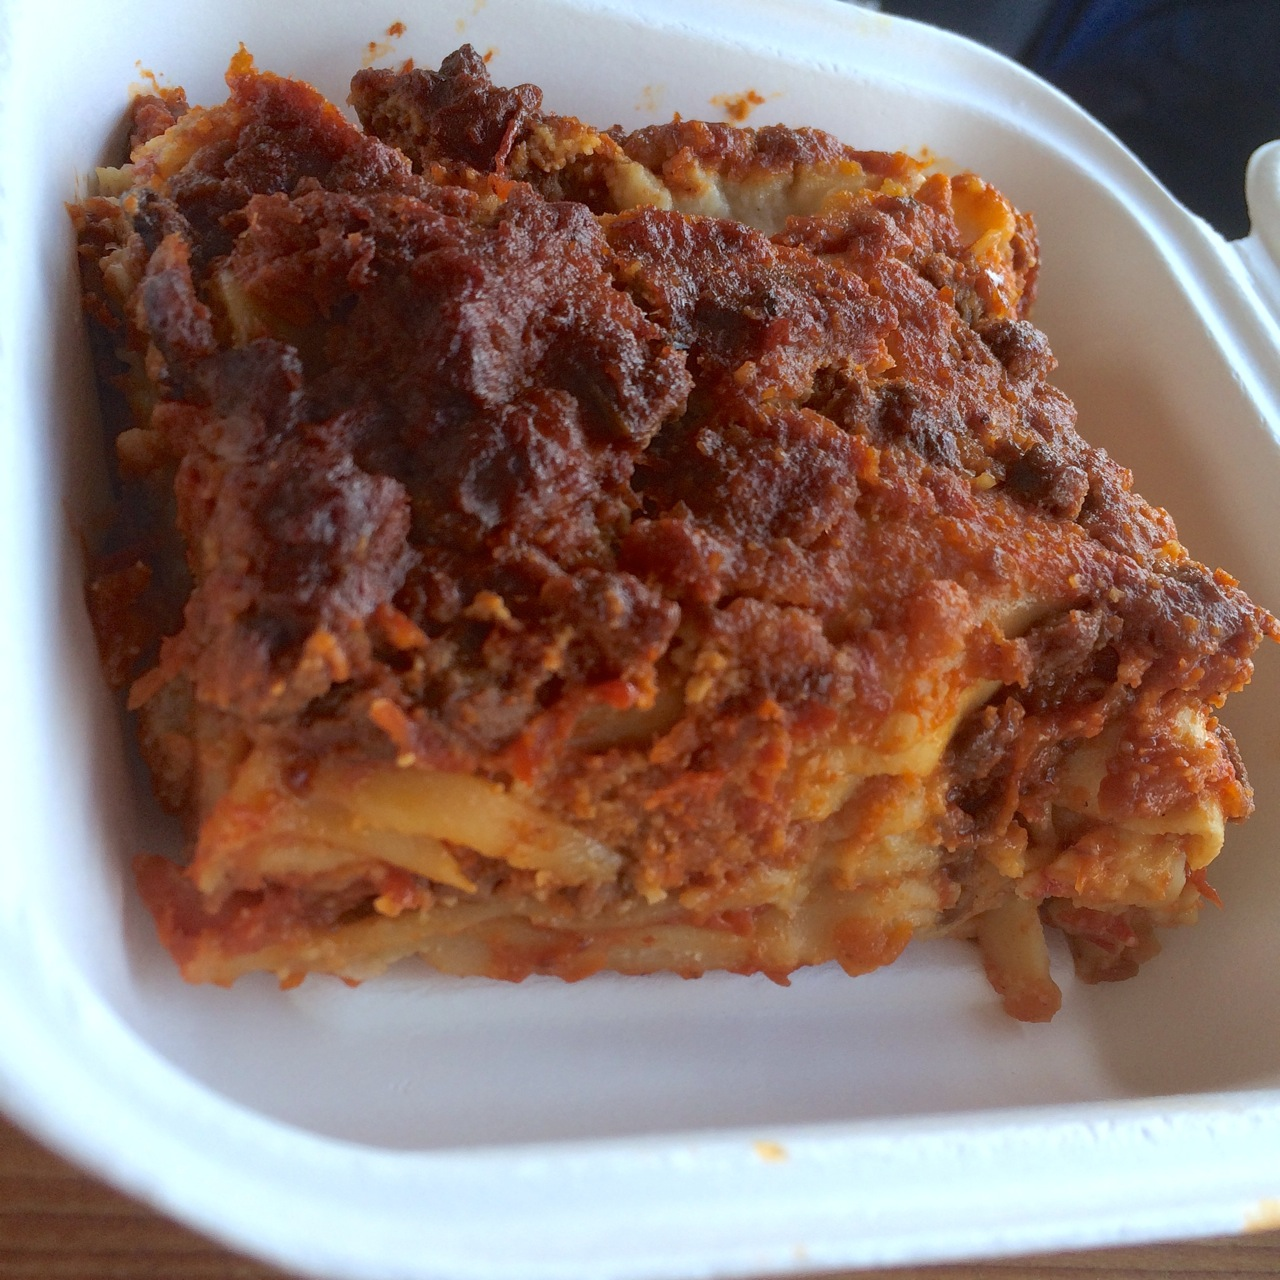 https://i0.wp.com/fatgayvegan.com/wp-content/uploads/2015/06/lasagna.jpg?fit=1280%2C1280